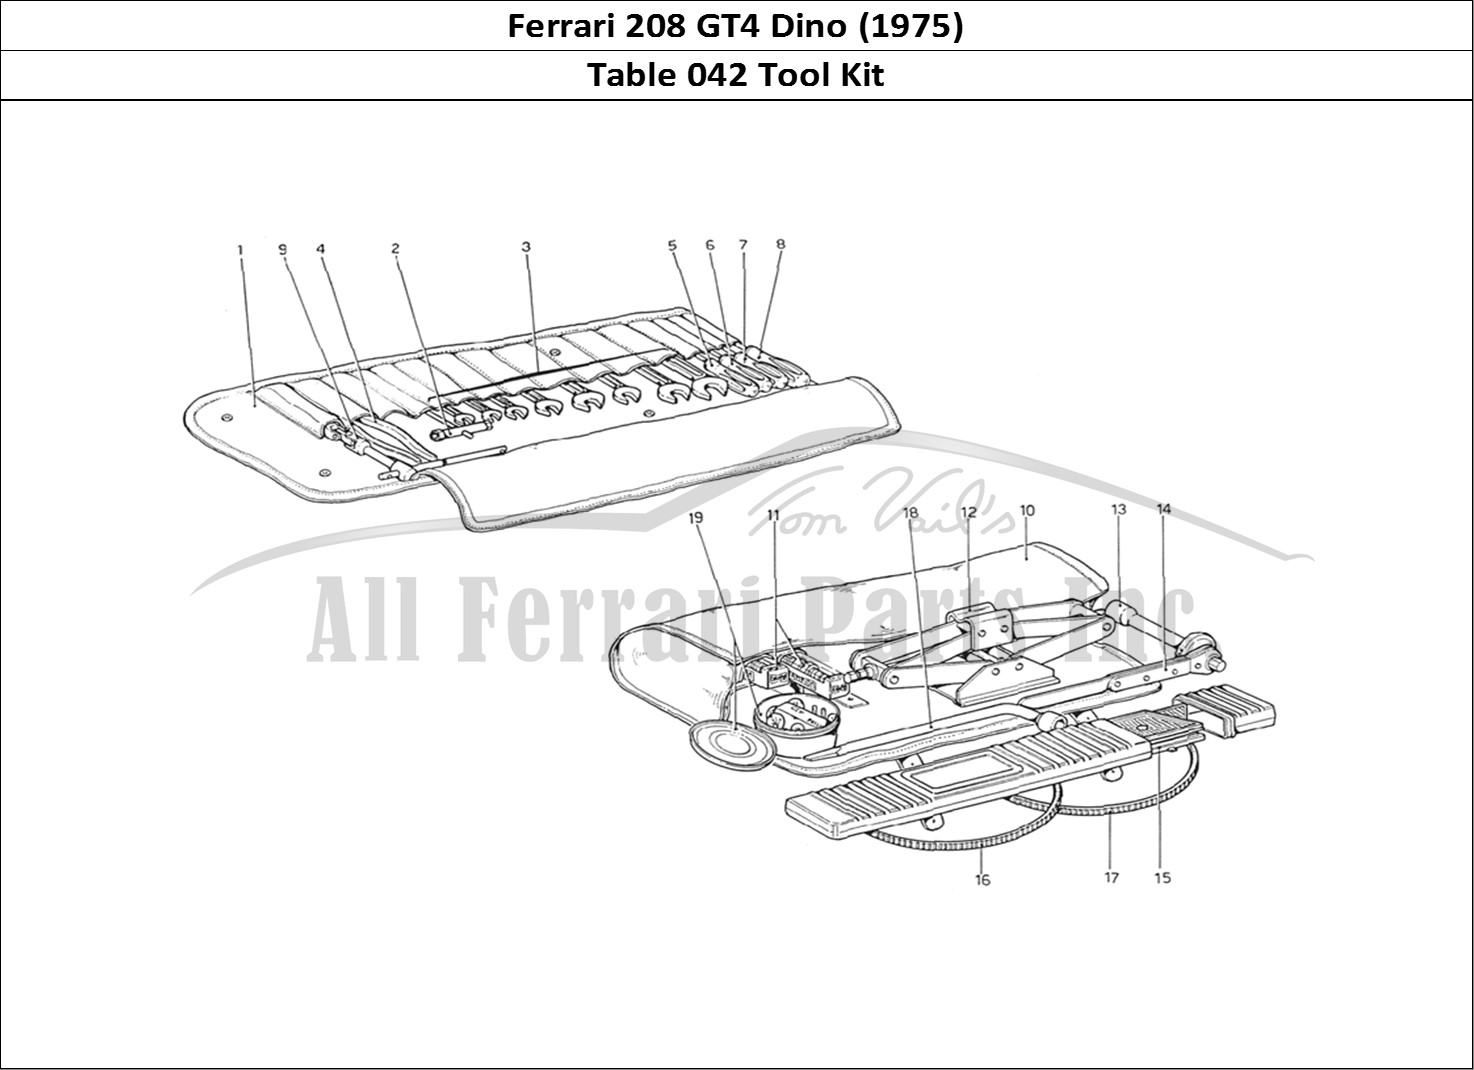 Buy Original Ferrari 208 Gt4 Dino 042 Tool Kit